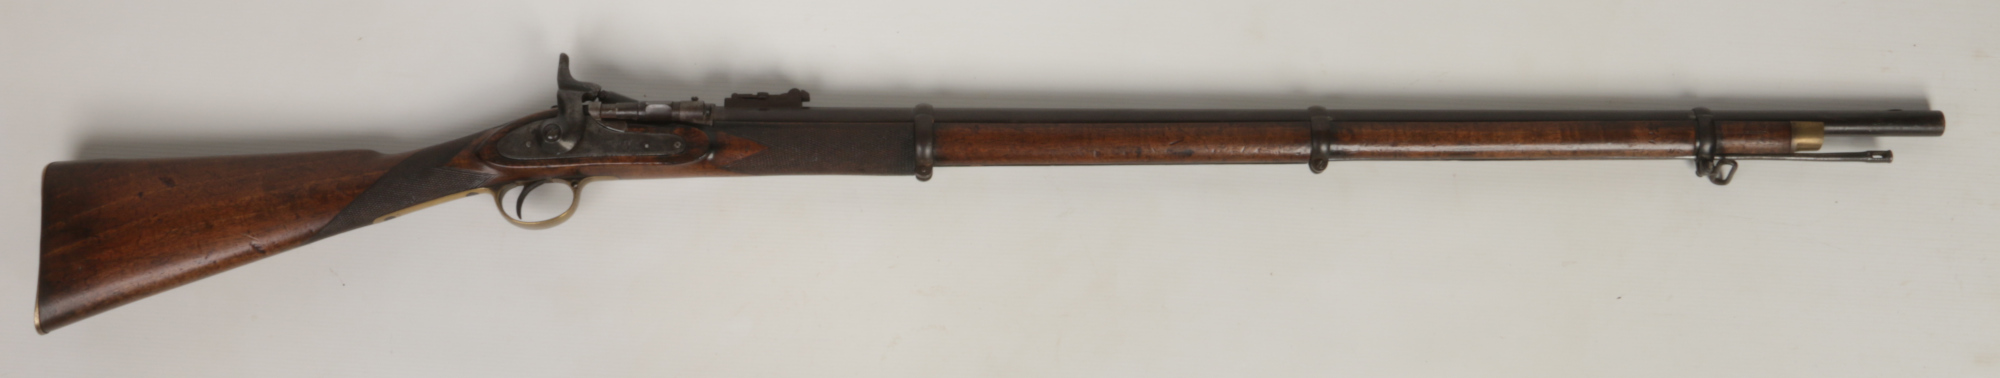 Lot 267 - A P53 Tower pattern three band percussion rifle with Schneider conversion .577. With walnut